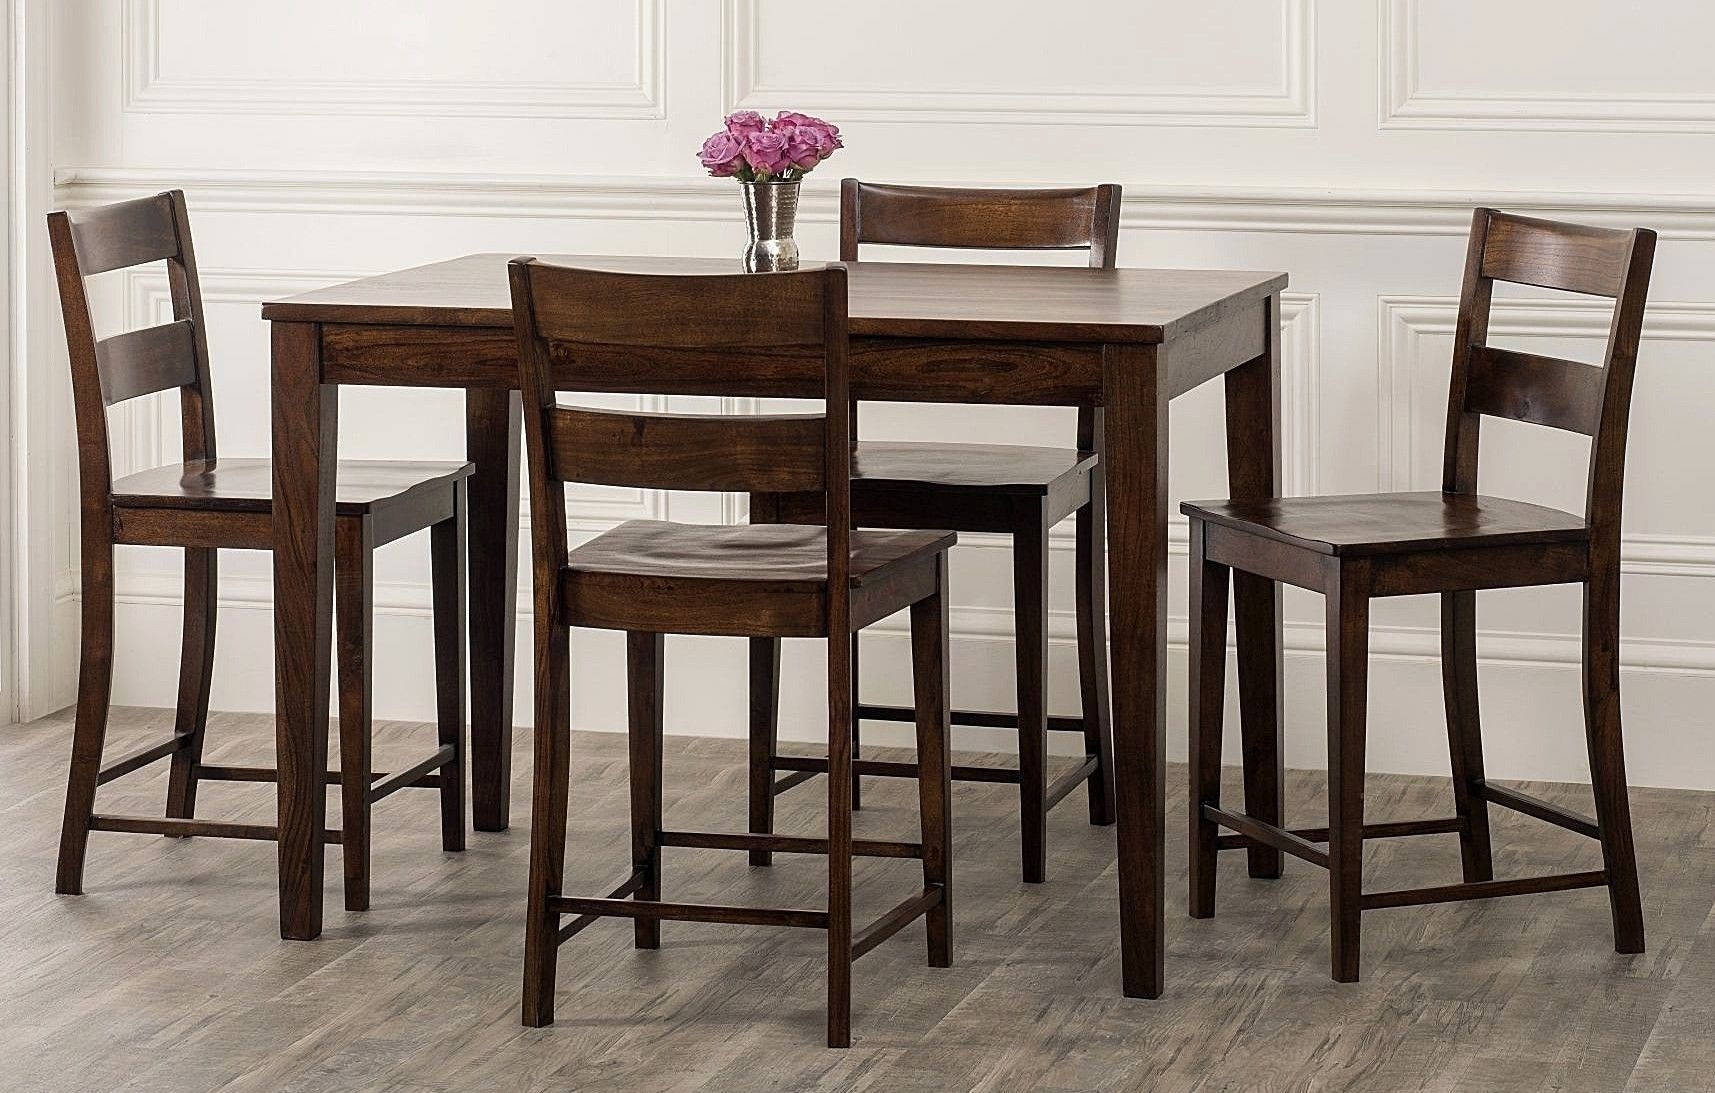 Kristopher 5 Piece Counter Height Dining Set | Products | Pinterest With Regard To 2018 Hyland 5 Piece Counter Sets With Stools (Image 14 of 20)